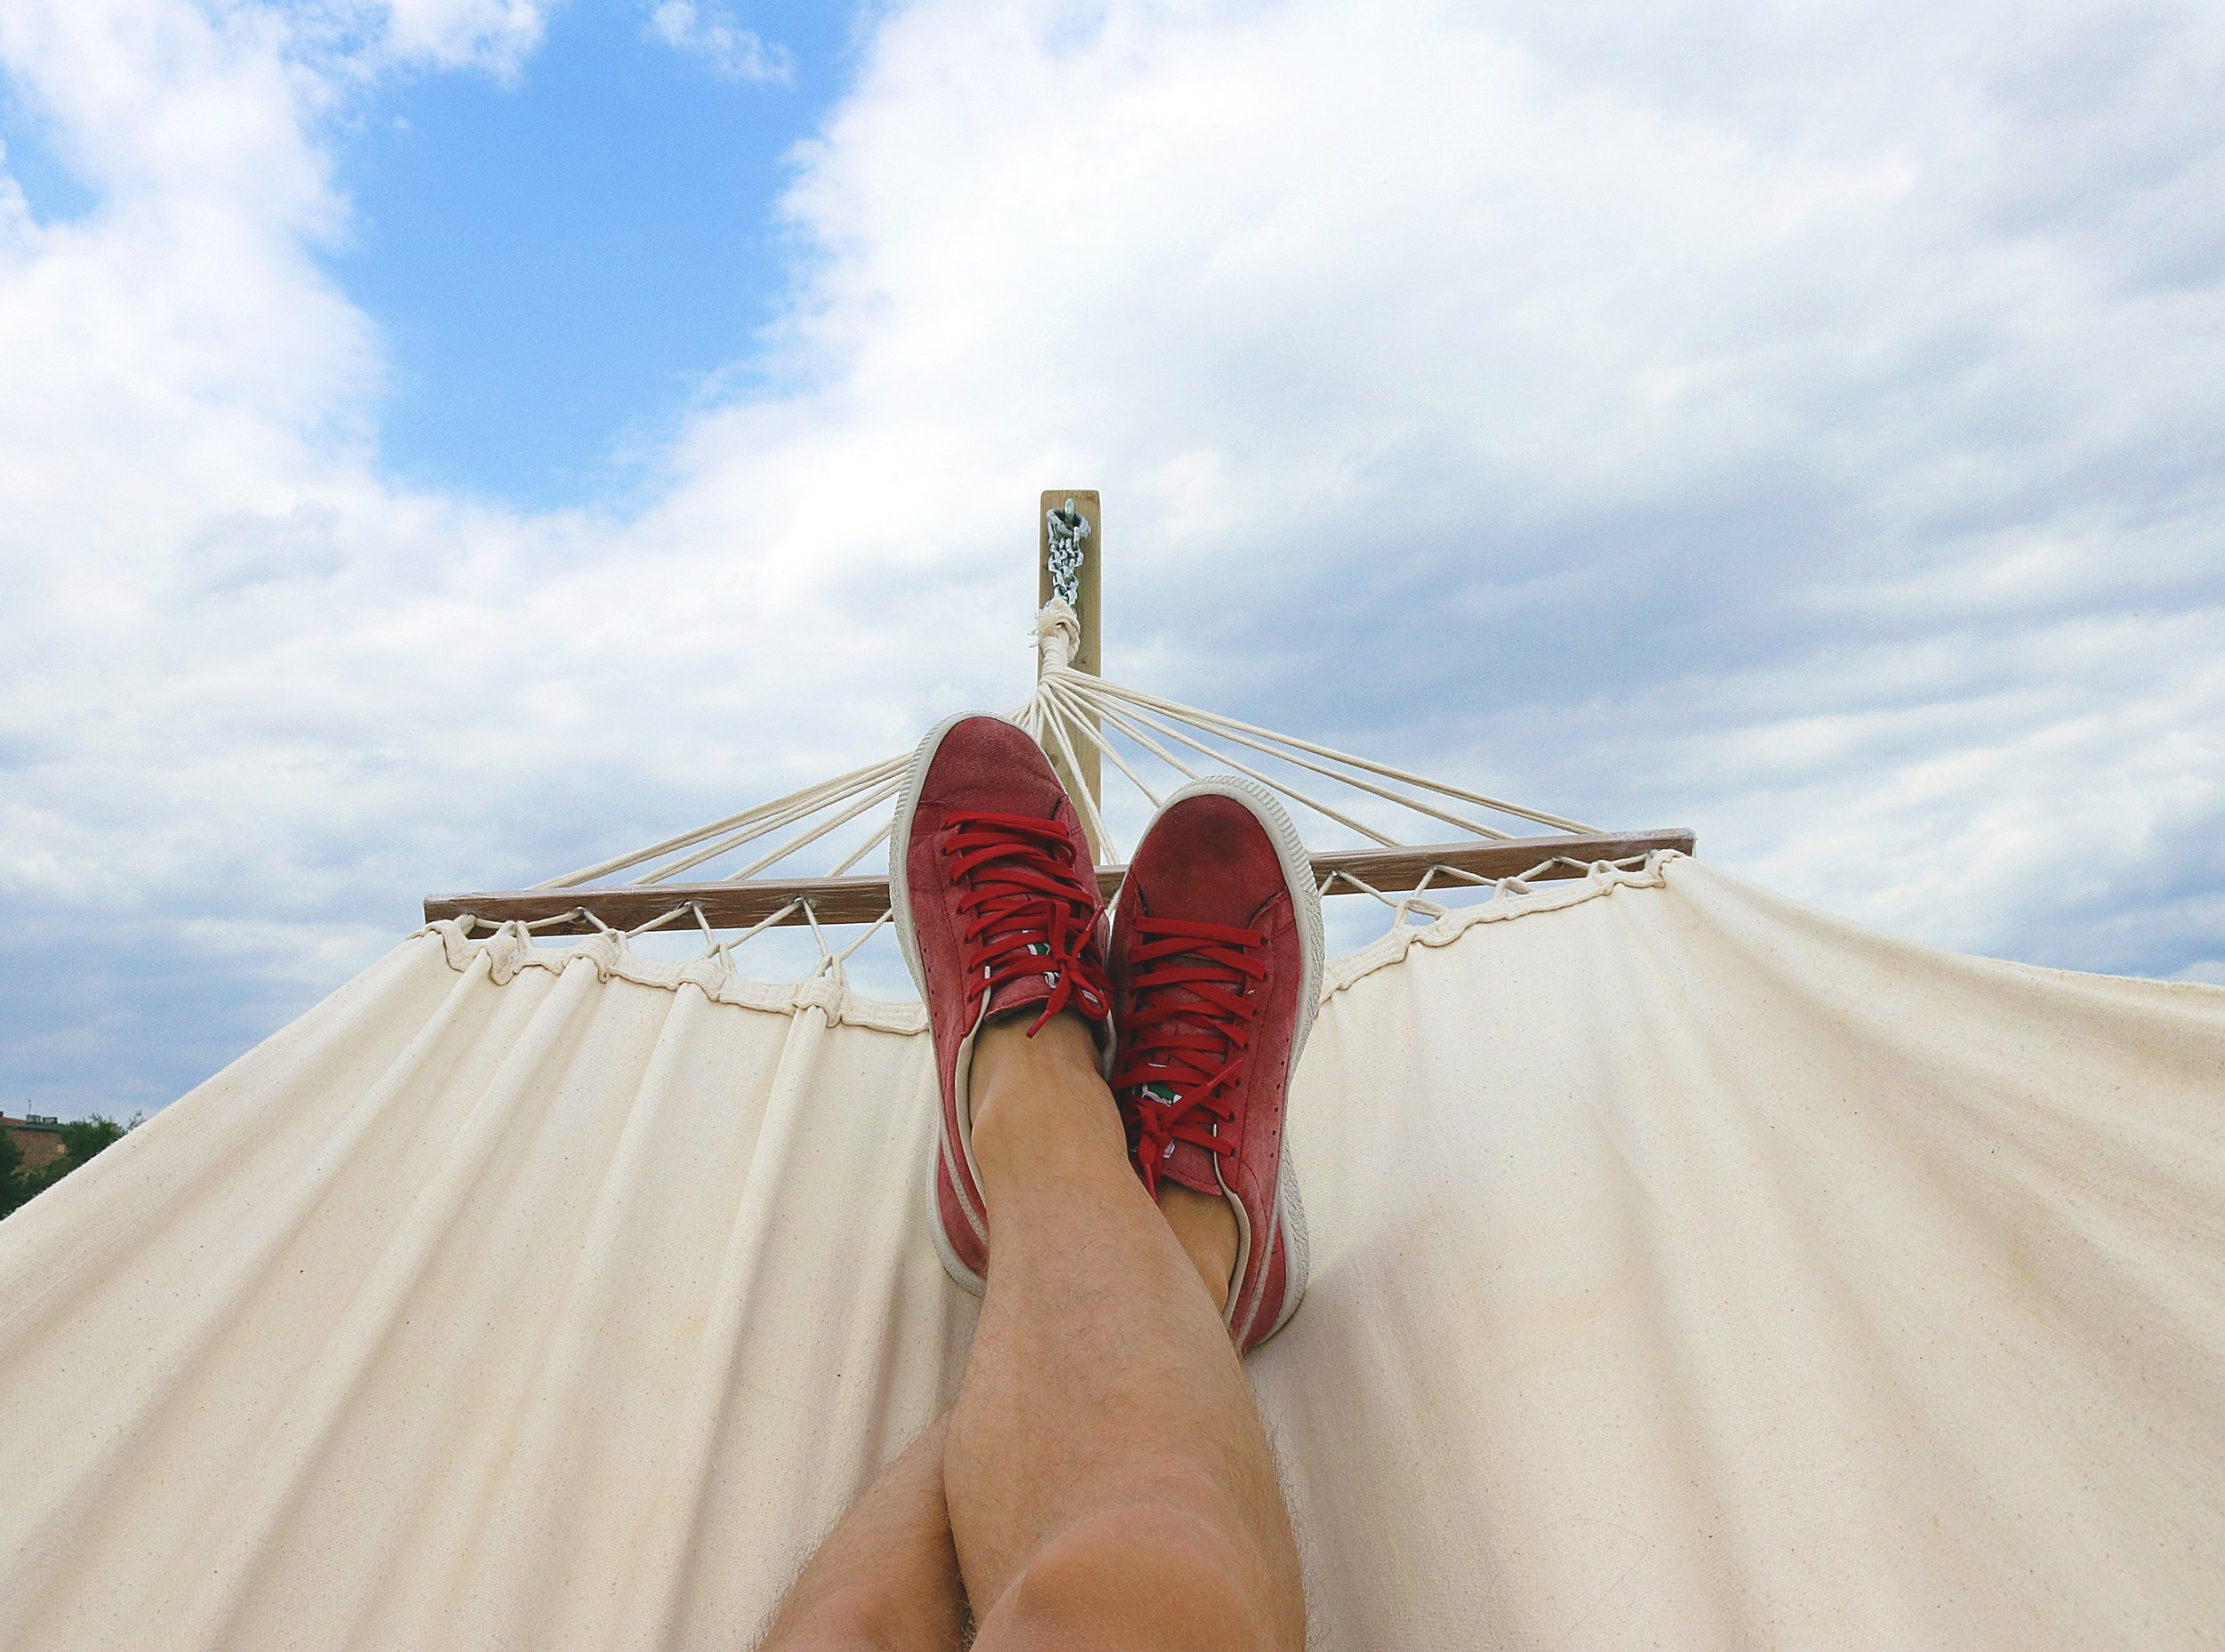 clear-sky-daydreaming-hammock-914929.jpg